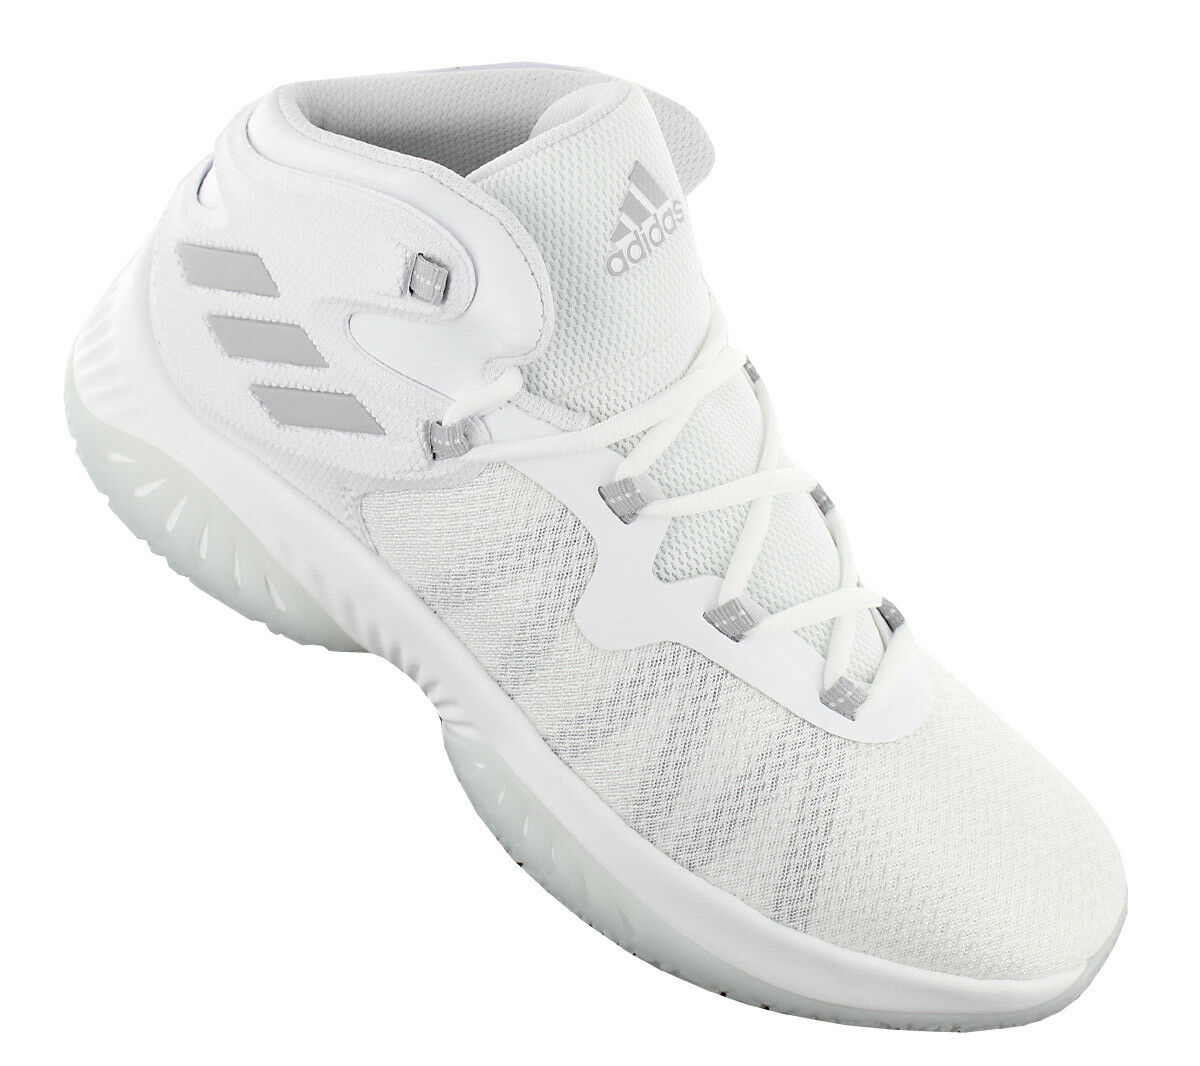 NEW adidas Explosive Bounce BY4467 Men''s shoes Trainers Sneakers SALE